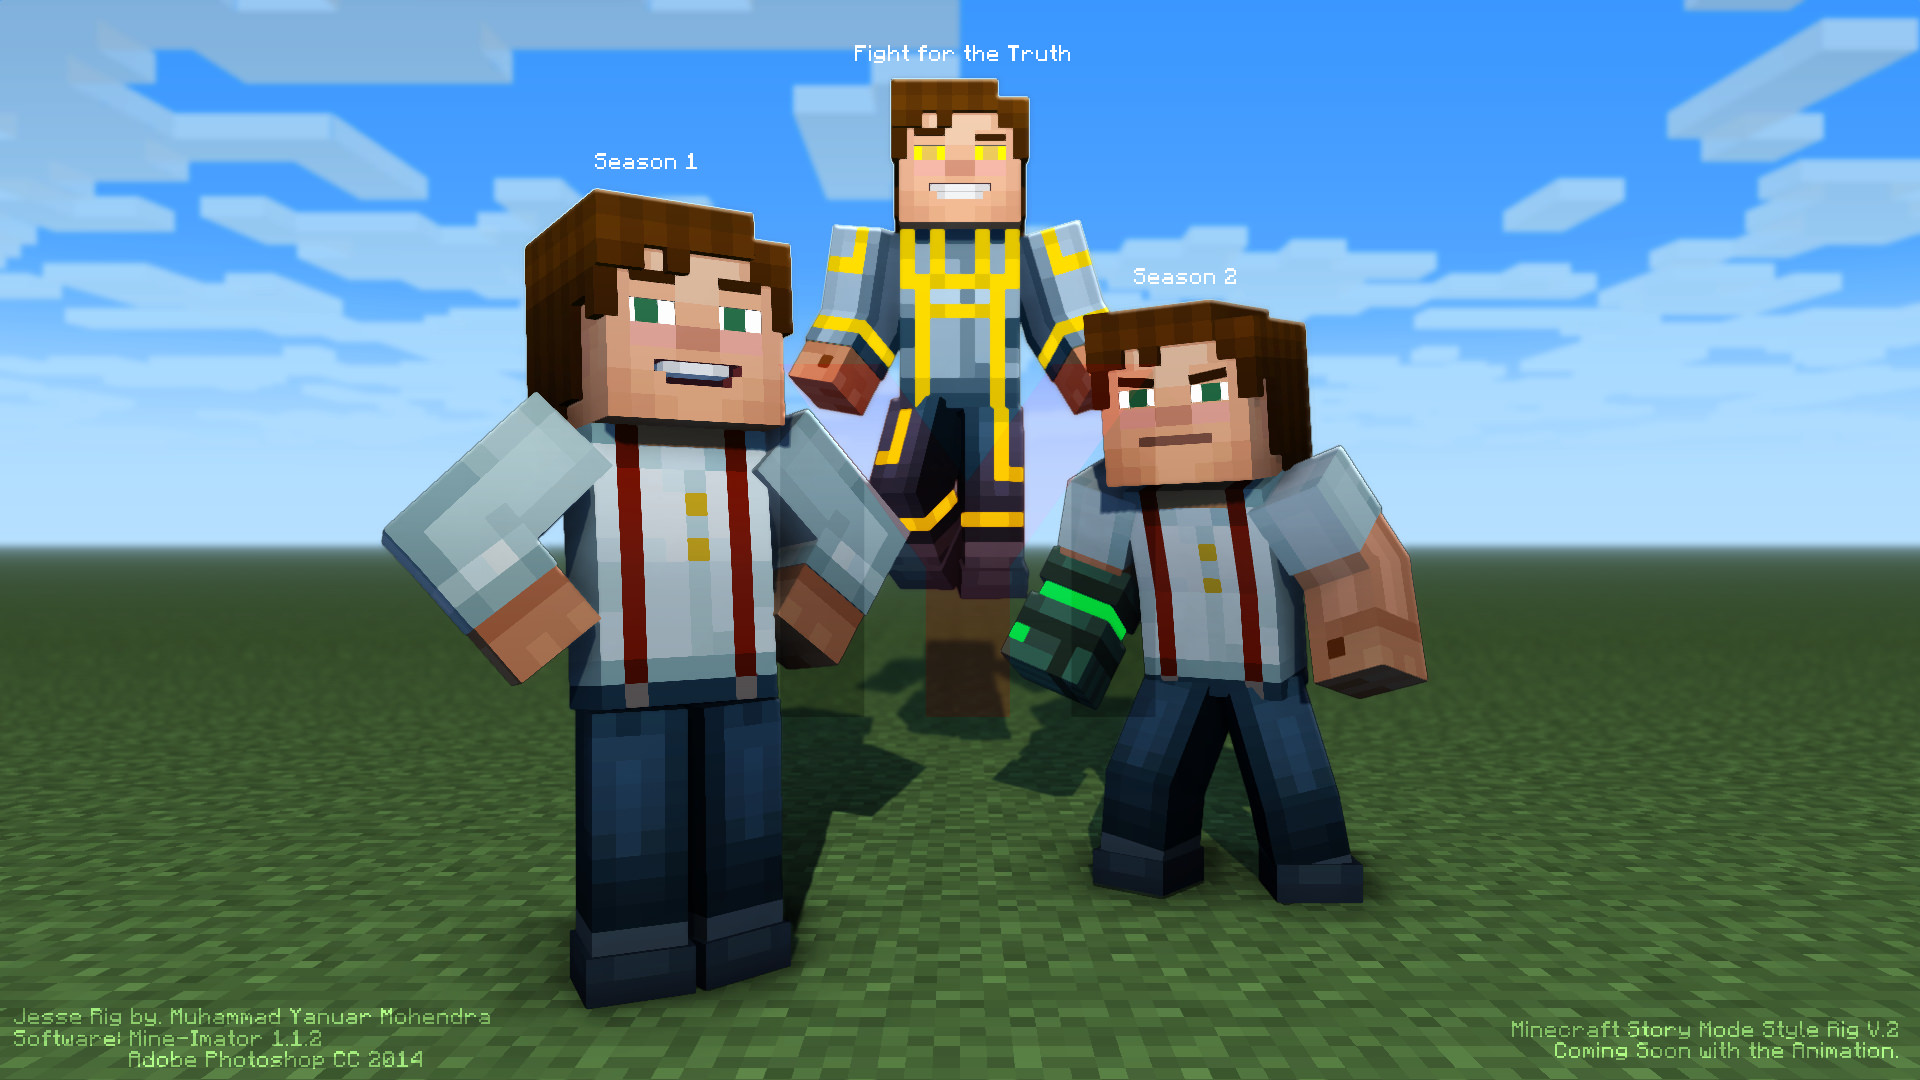 Ym Sgt S Minecraft Story Mode Style Rig Pack New Olivia Rig